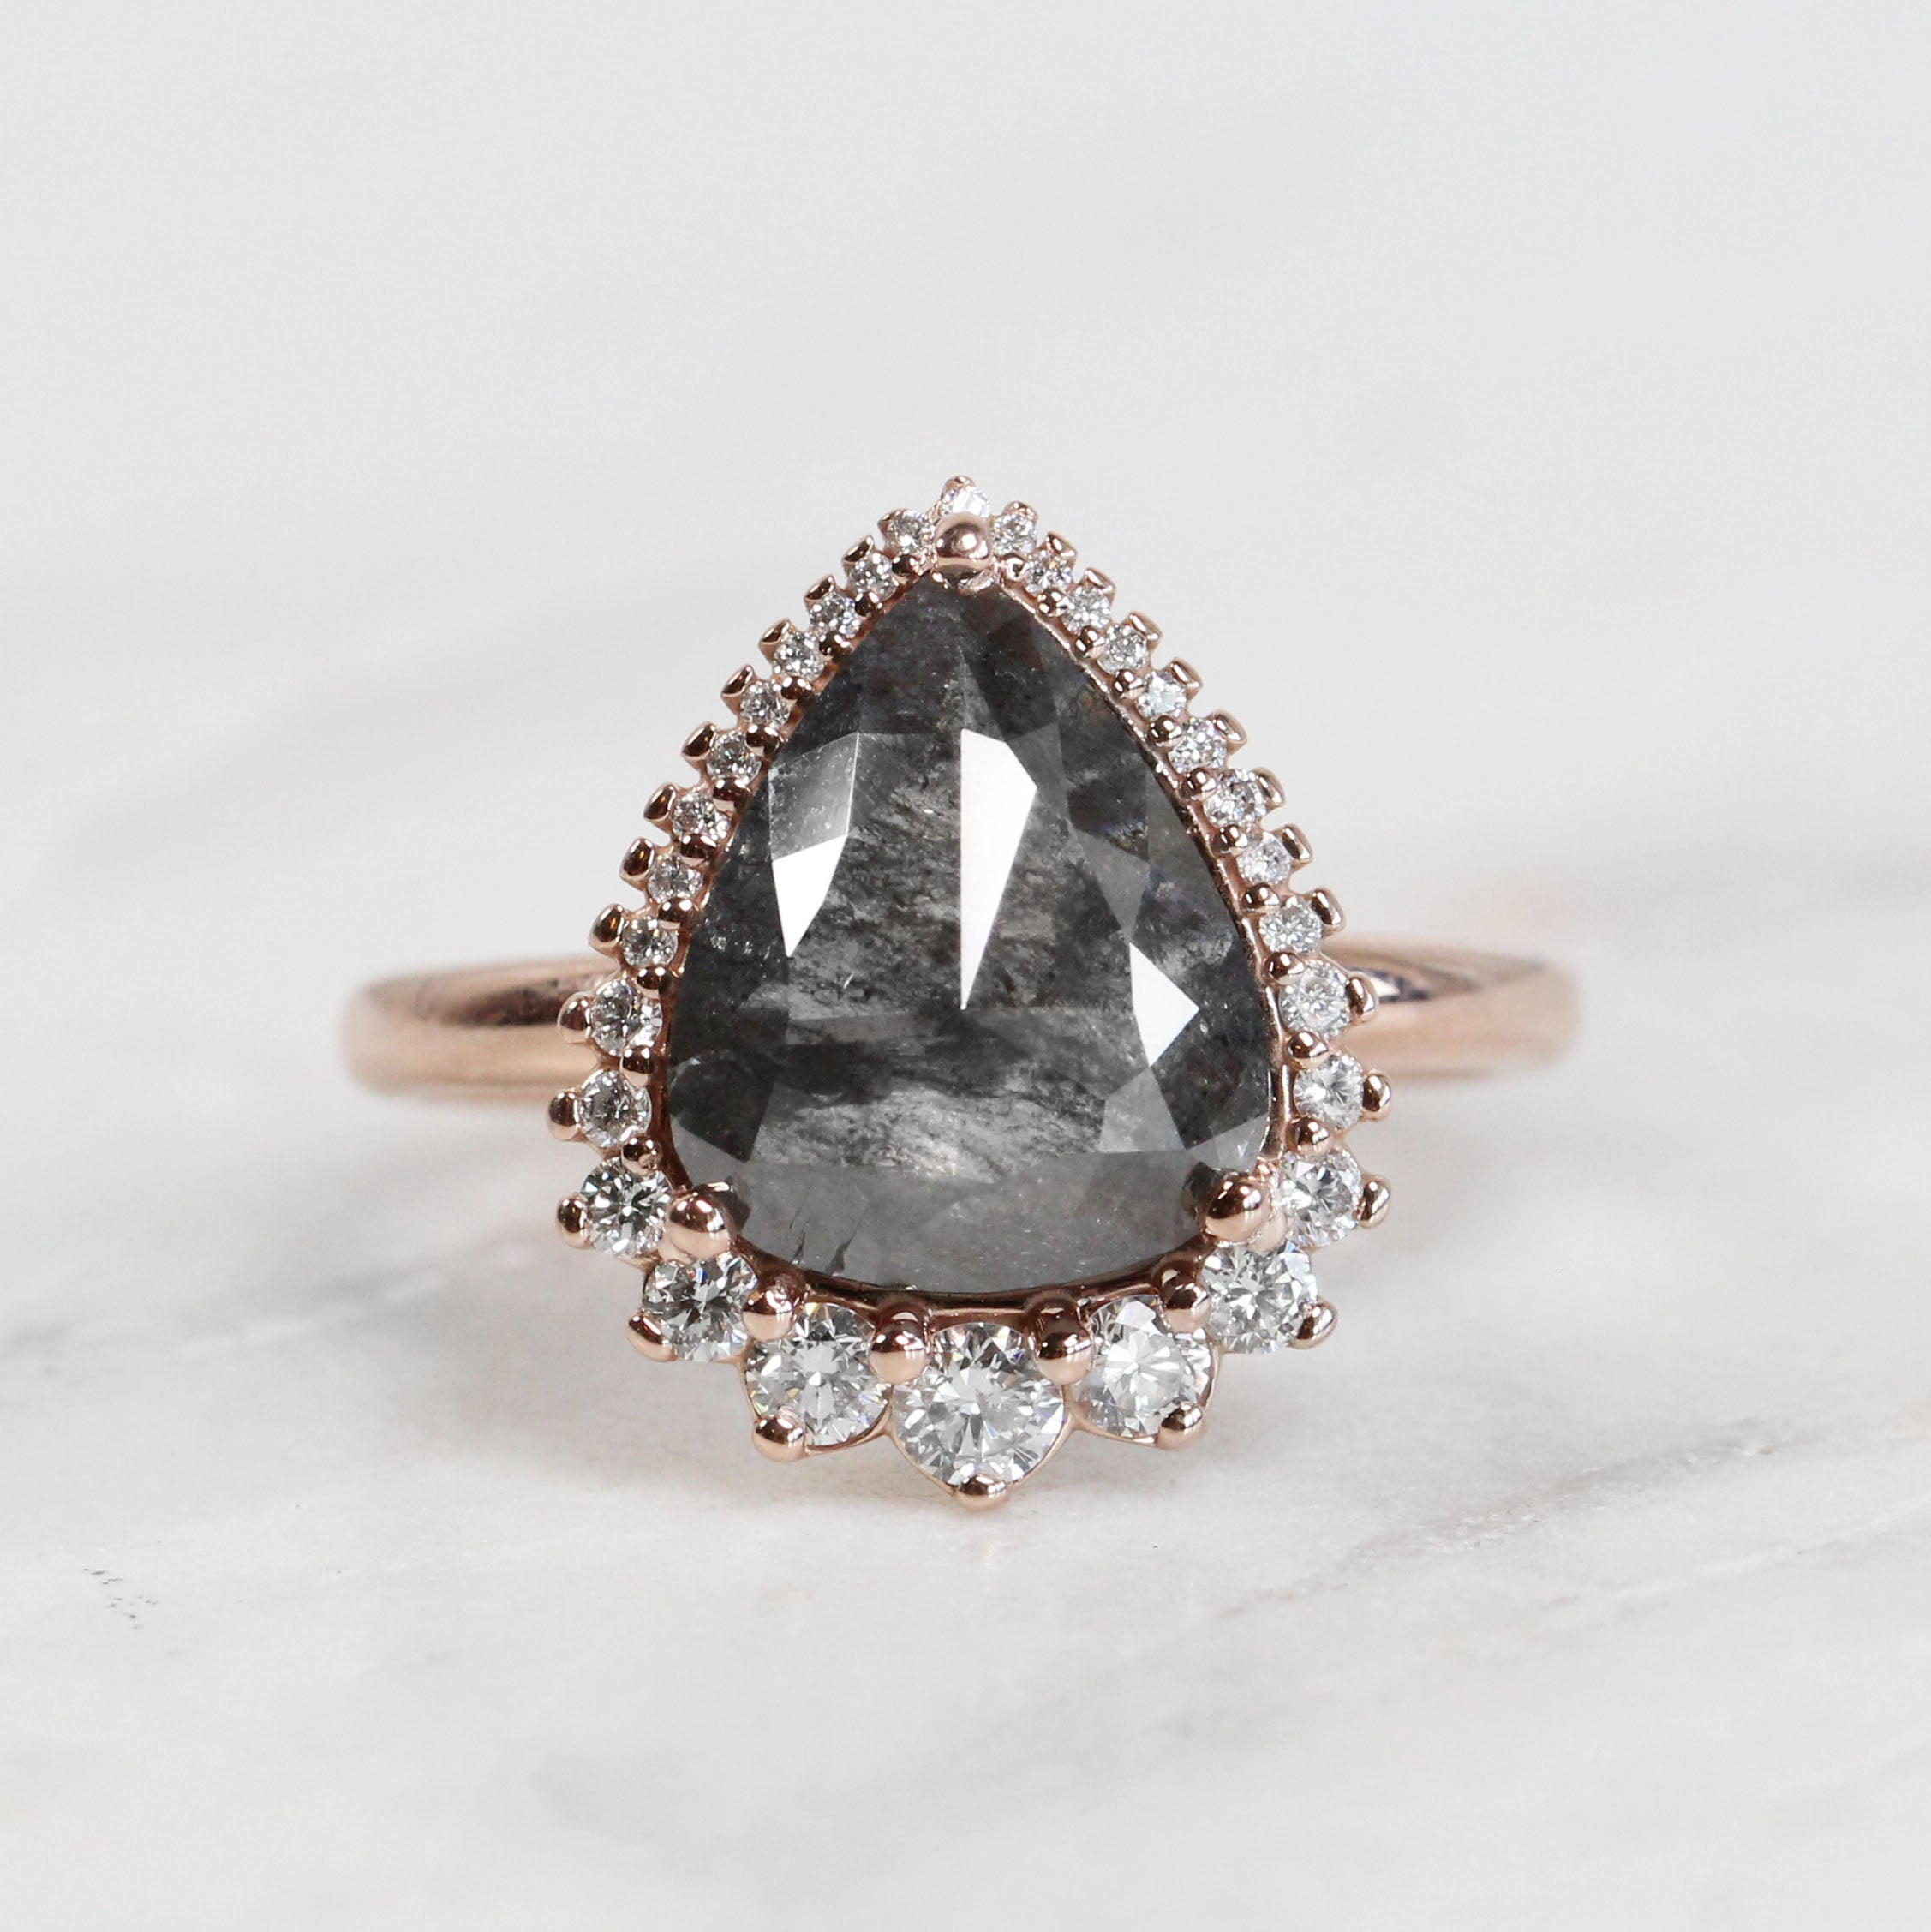 Eleanor Ring with 2.91 Carat Pear Celestial Diamond in 14k Rose Gold - Ready to Size and Ship - Salt & Pepper Celestial Diamond Engagement Rings and Wedding Bands  by Midwinter Co.